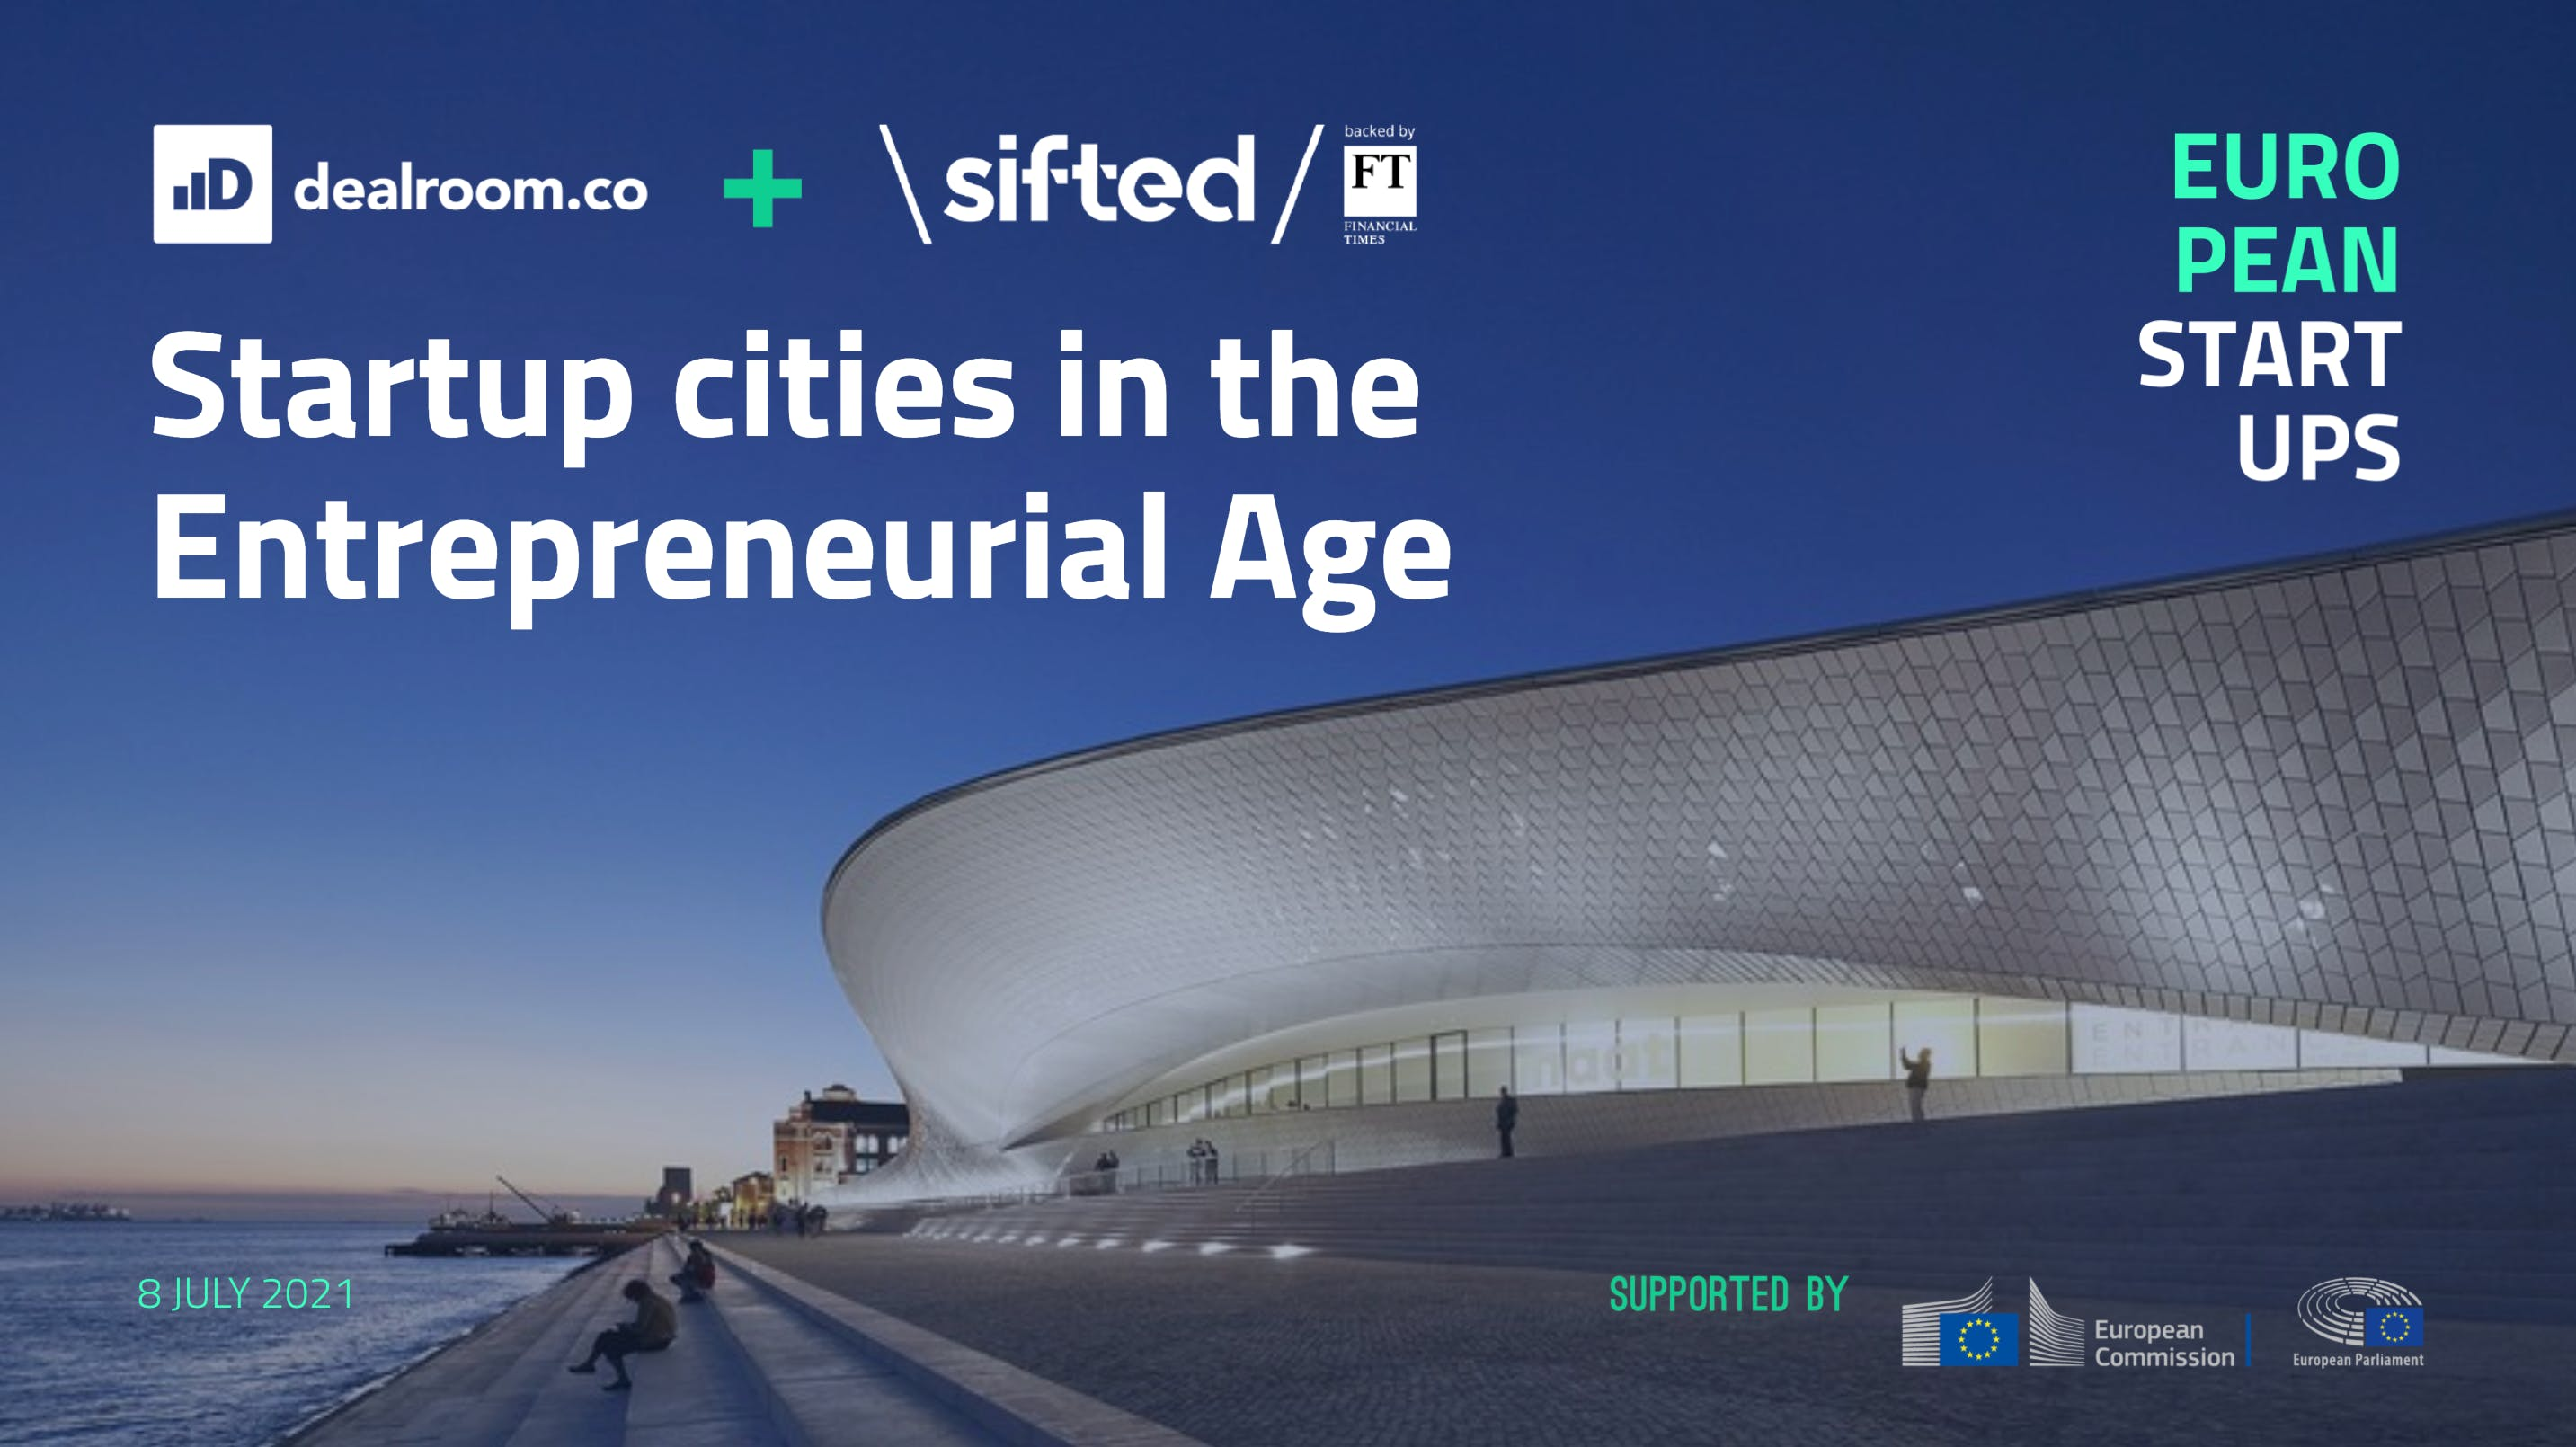 Startup cities in the entrepreneurial age   Dealroom.co